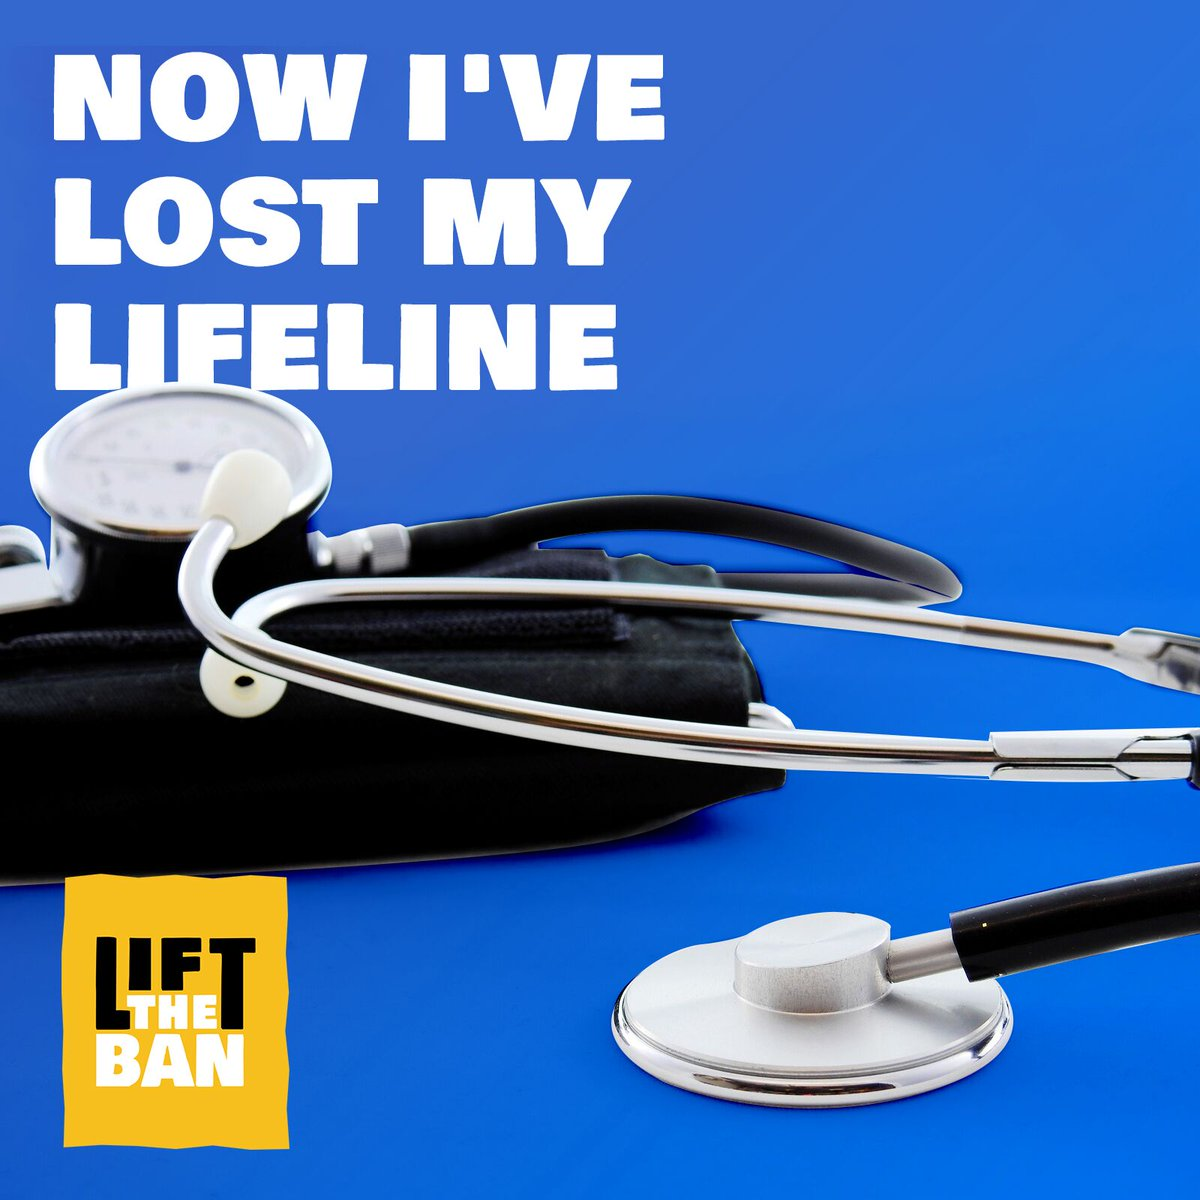 Doctors and nurses are trained to care for us when we need it most. But even the most vital healthcare workers are banned from working if they're seeking asylum in the UK.   Agree with us that this needs to change? Sign the petition to #LiftTheBan: https://act.refugee-action.org.uk/page/29178/petition/1 …